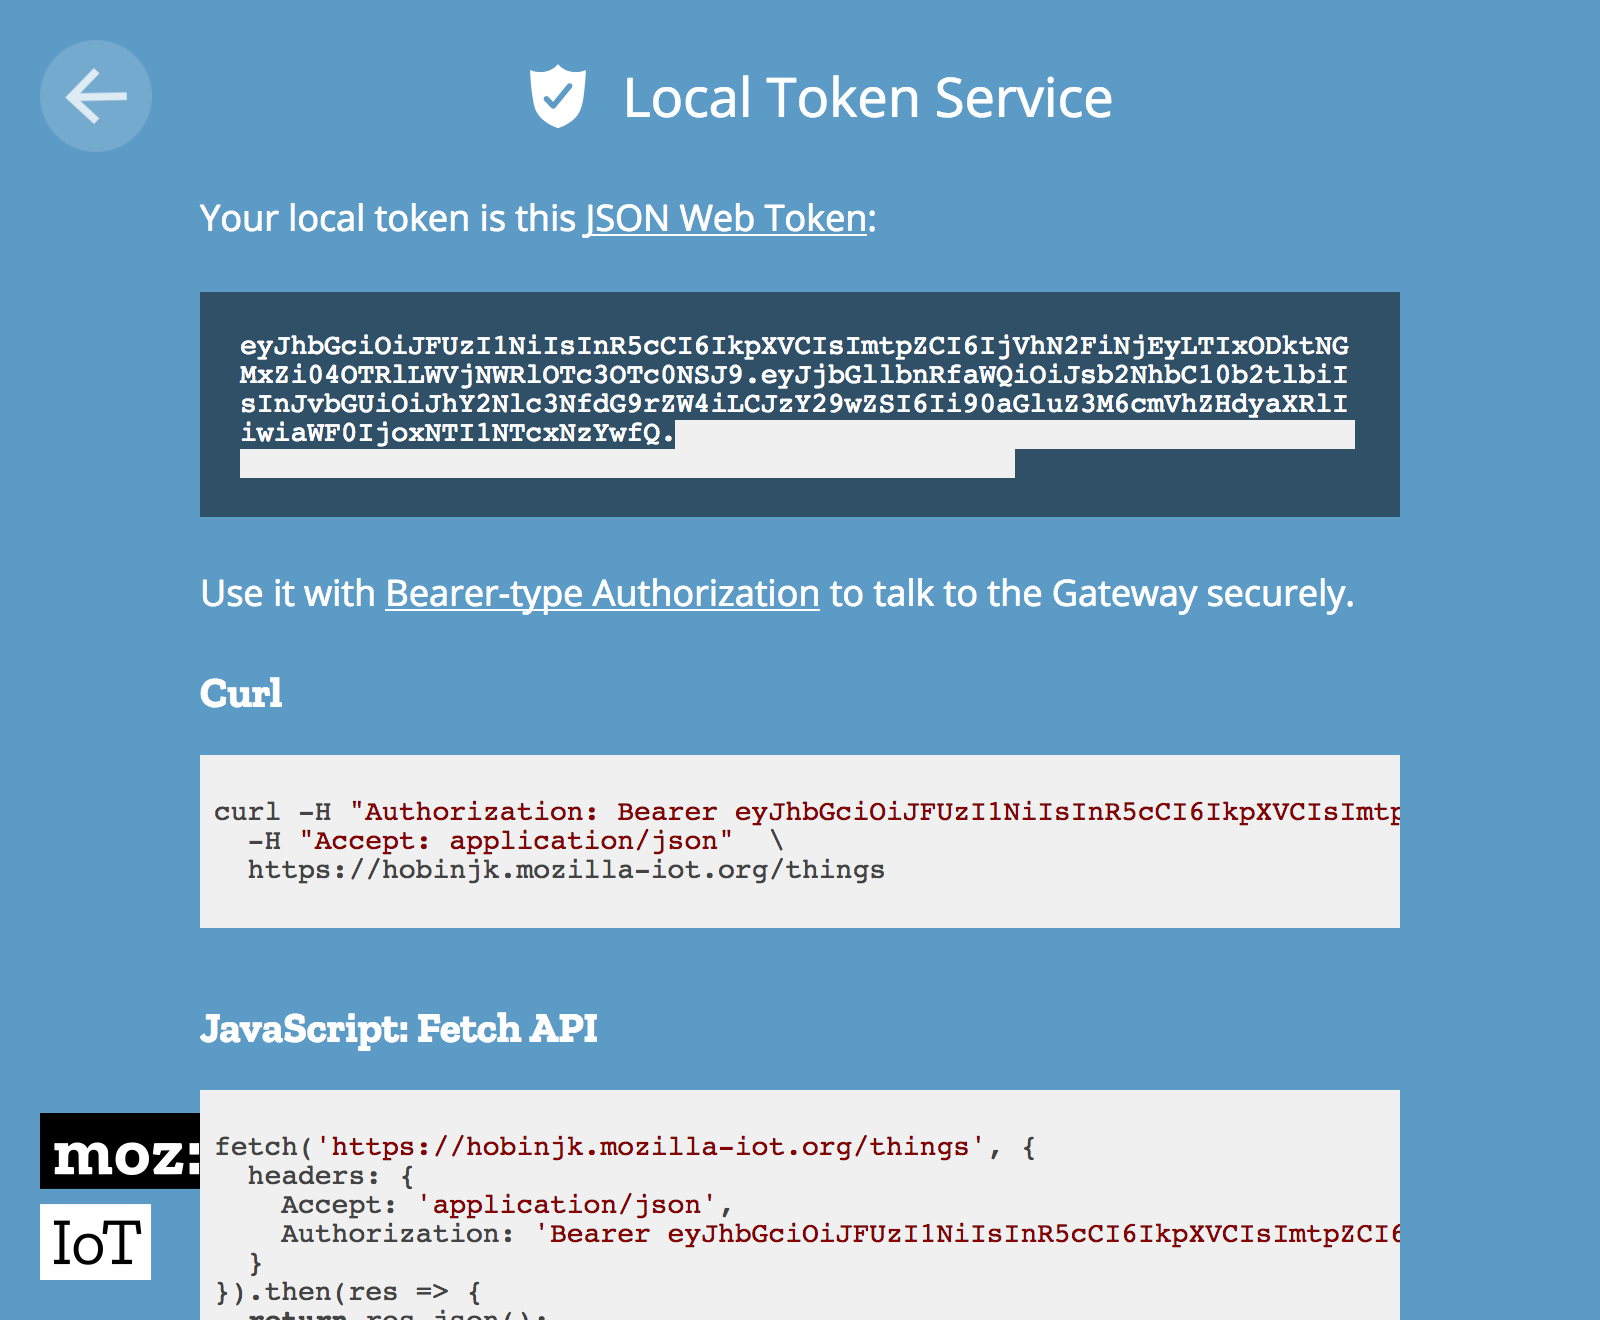 The Local Token Service